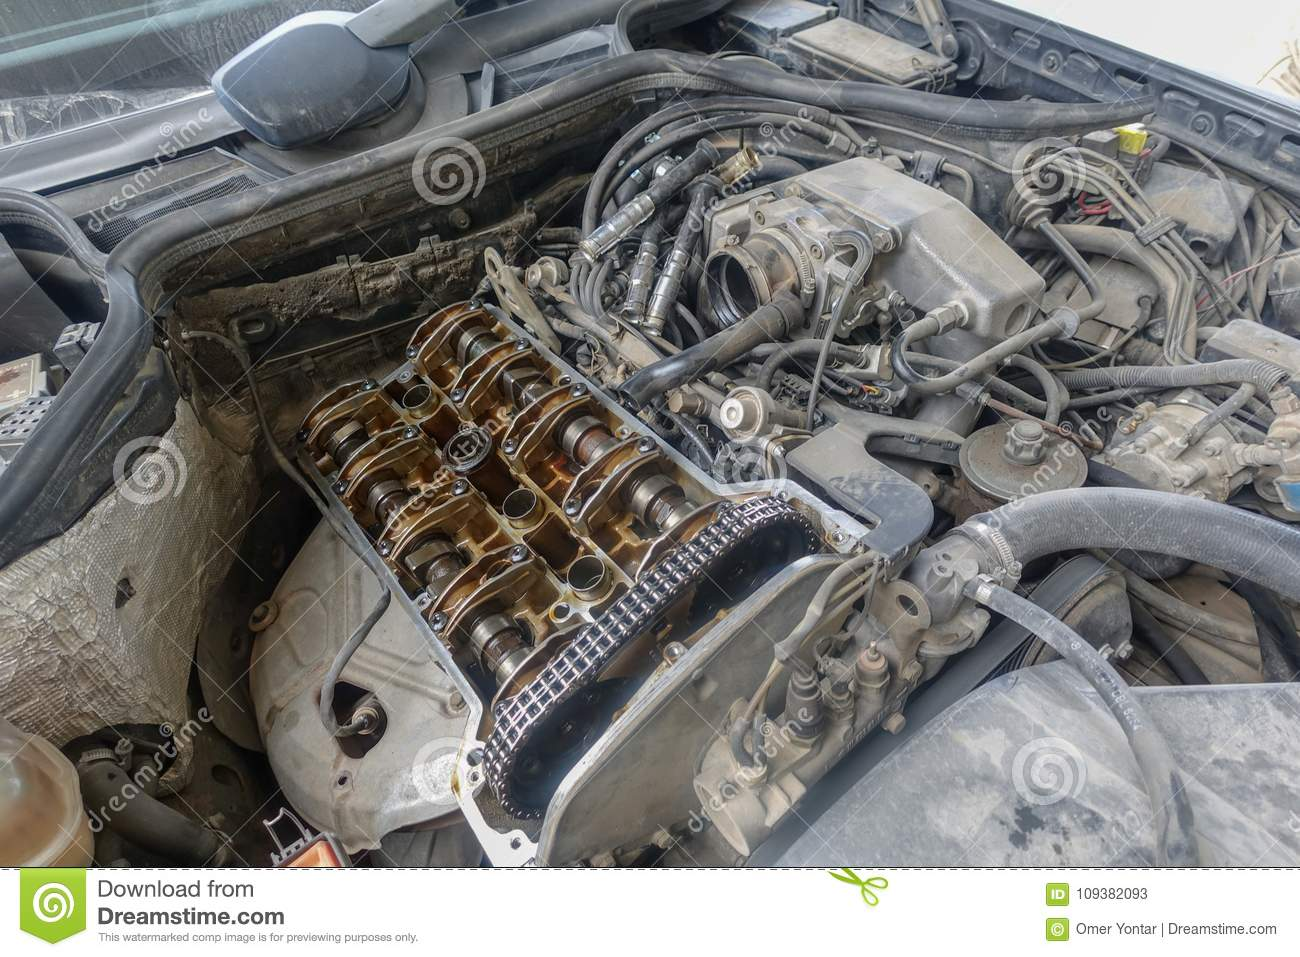 Garage and and car parts stock image. Image of able - 109382093